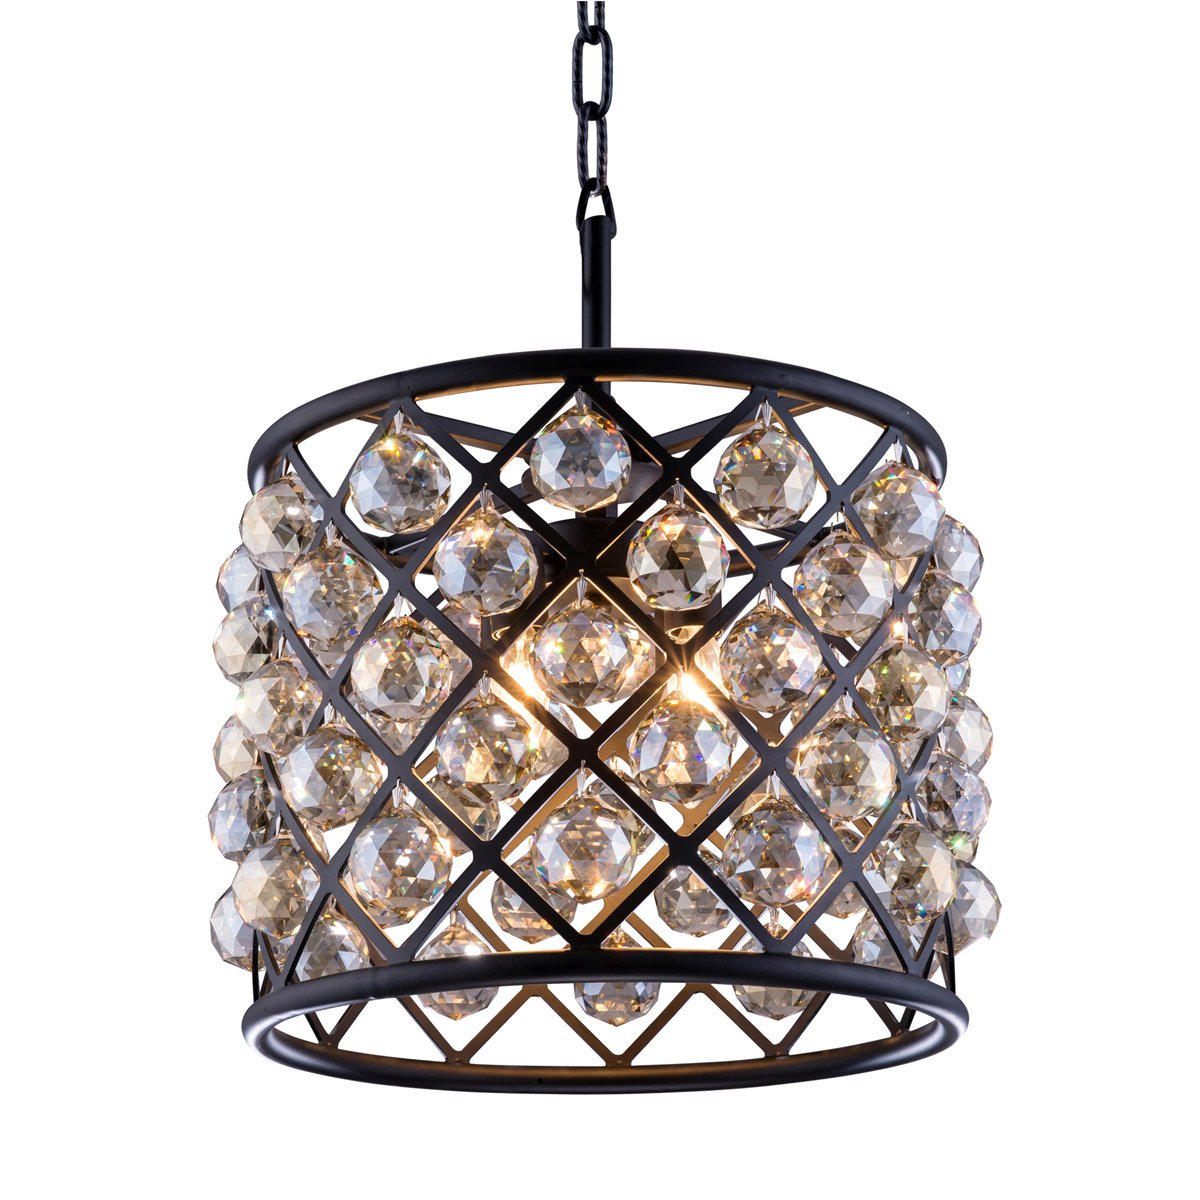 Madison 14 Crystal Mini Pendant With 4 Lights - Matte Black Finish And Smokey Crystal Pendant